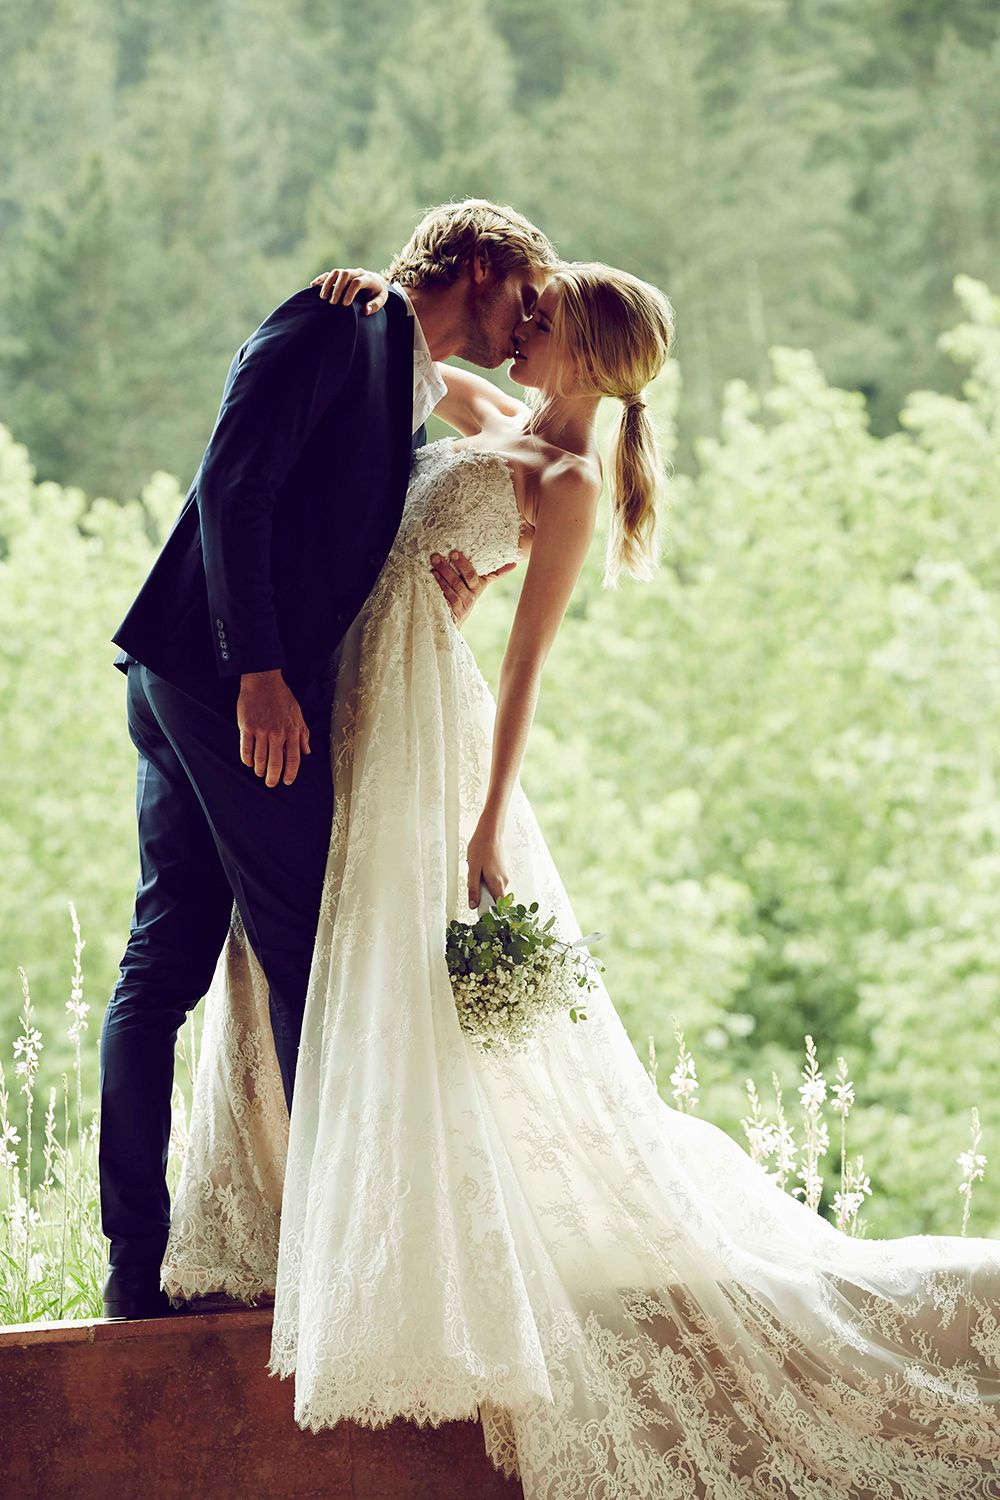 Rustic And Beautiful Wedding Gown From Ovias